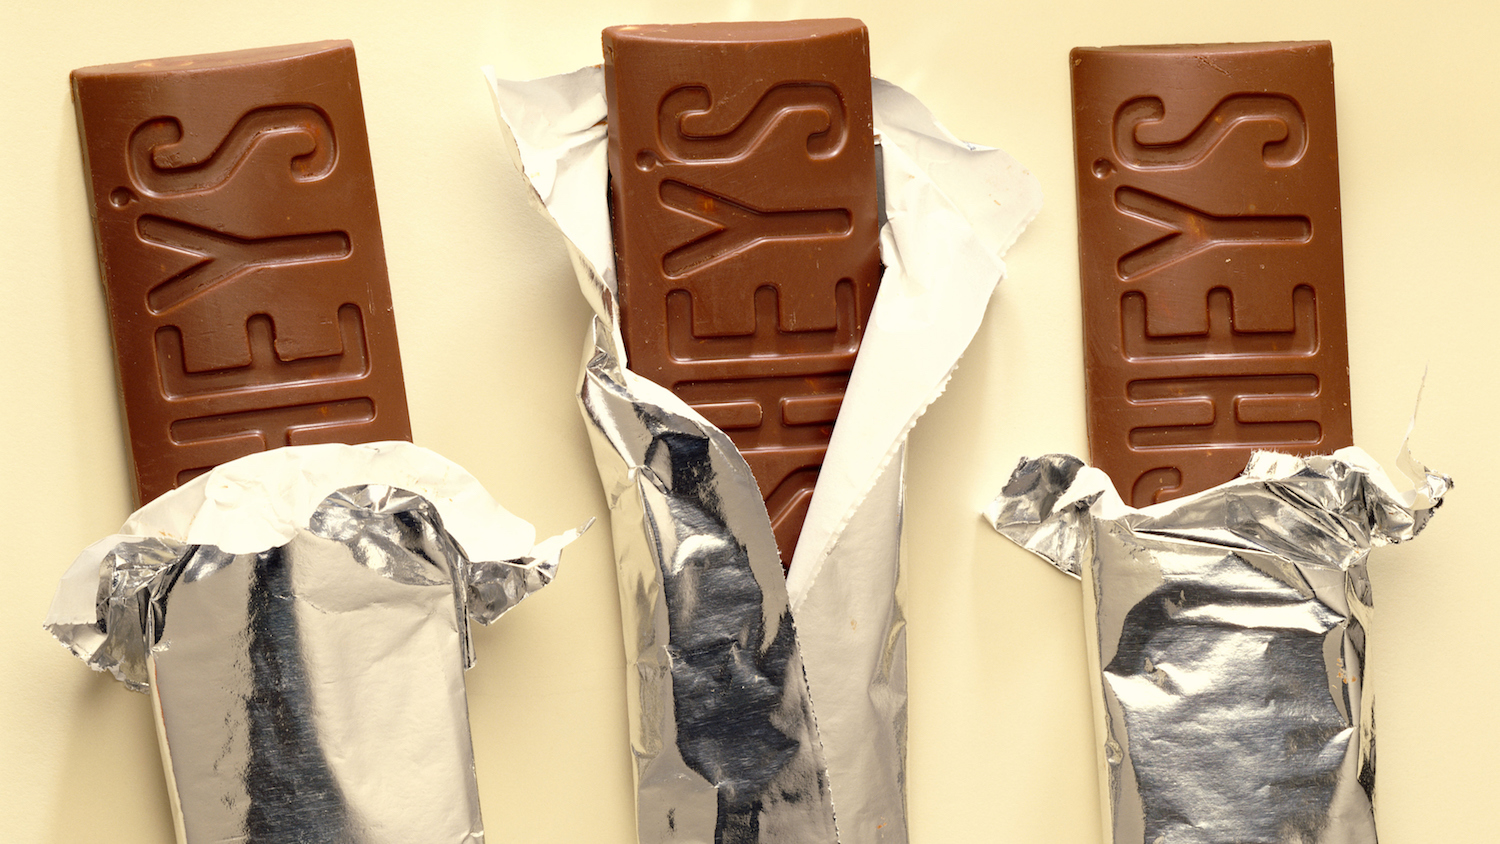 Lawsuit Alleging Hershey's Under-Fills Whoppers Boxes Moves Forward